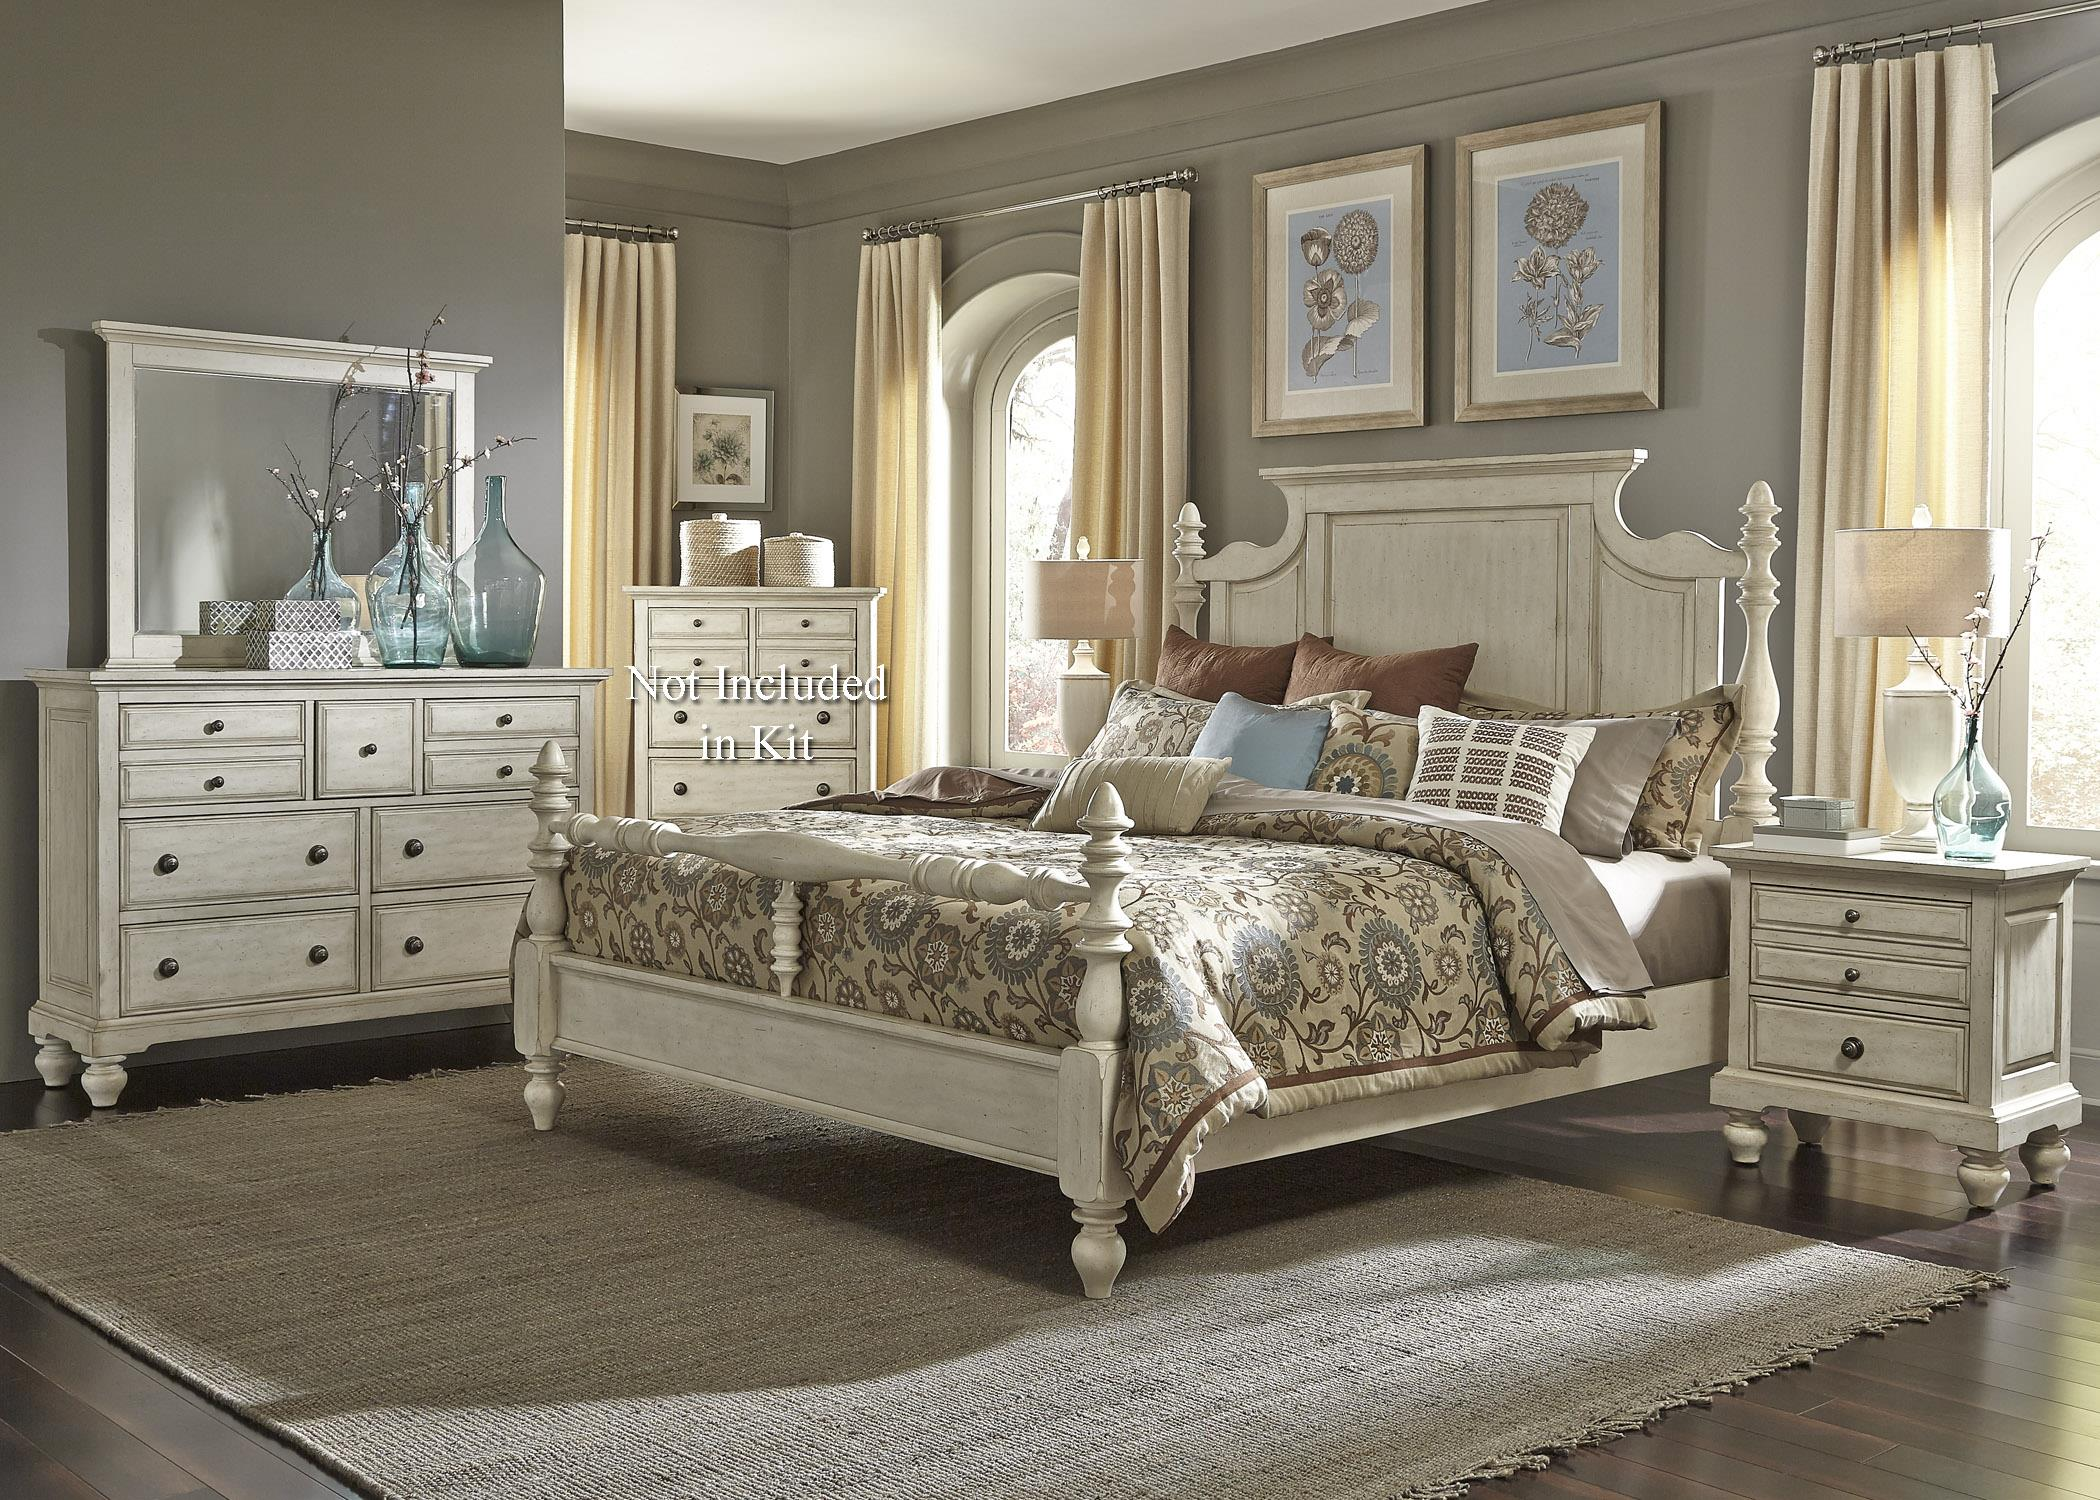 Liberty Furniture 697-BR King Bedroom Group - Item Number: 697-BR-KPSDMN